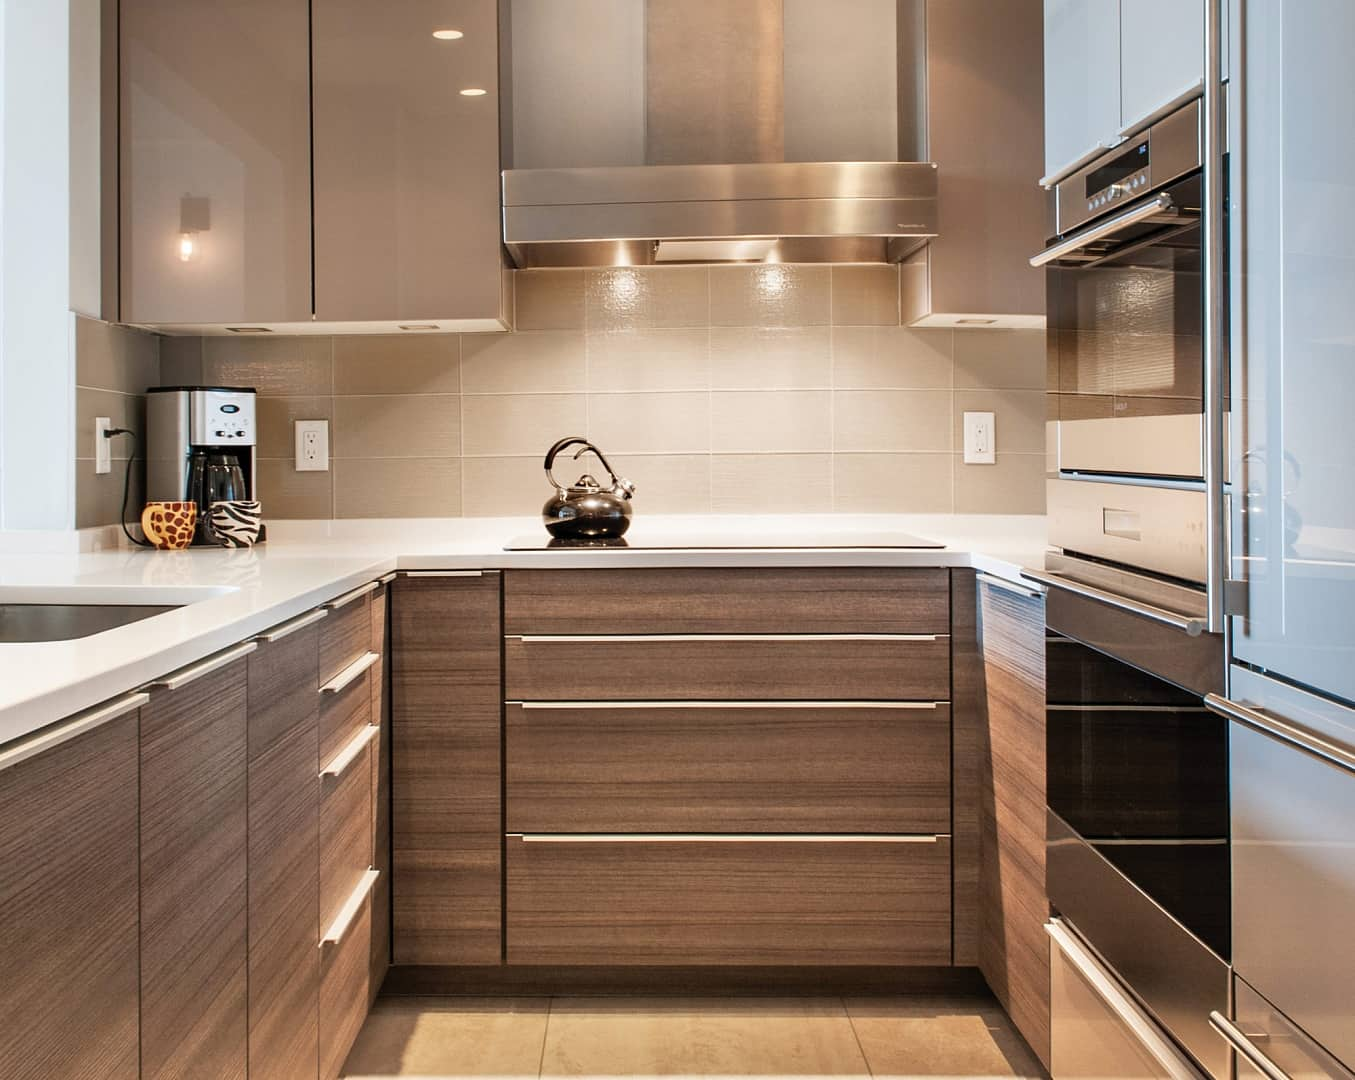 Kitchen Planning 101: The Ultimate Kitchen Remodeling Guidelines. U-shaped kitchen design with wooden facaded furniture and lots of LED fixtures